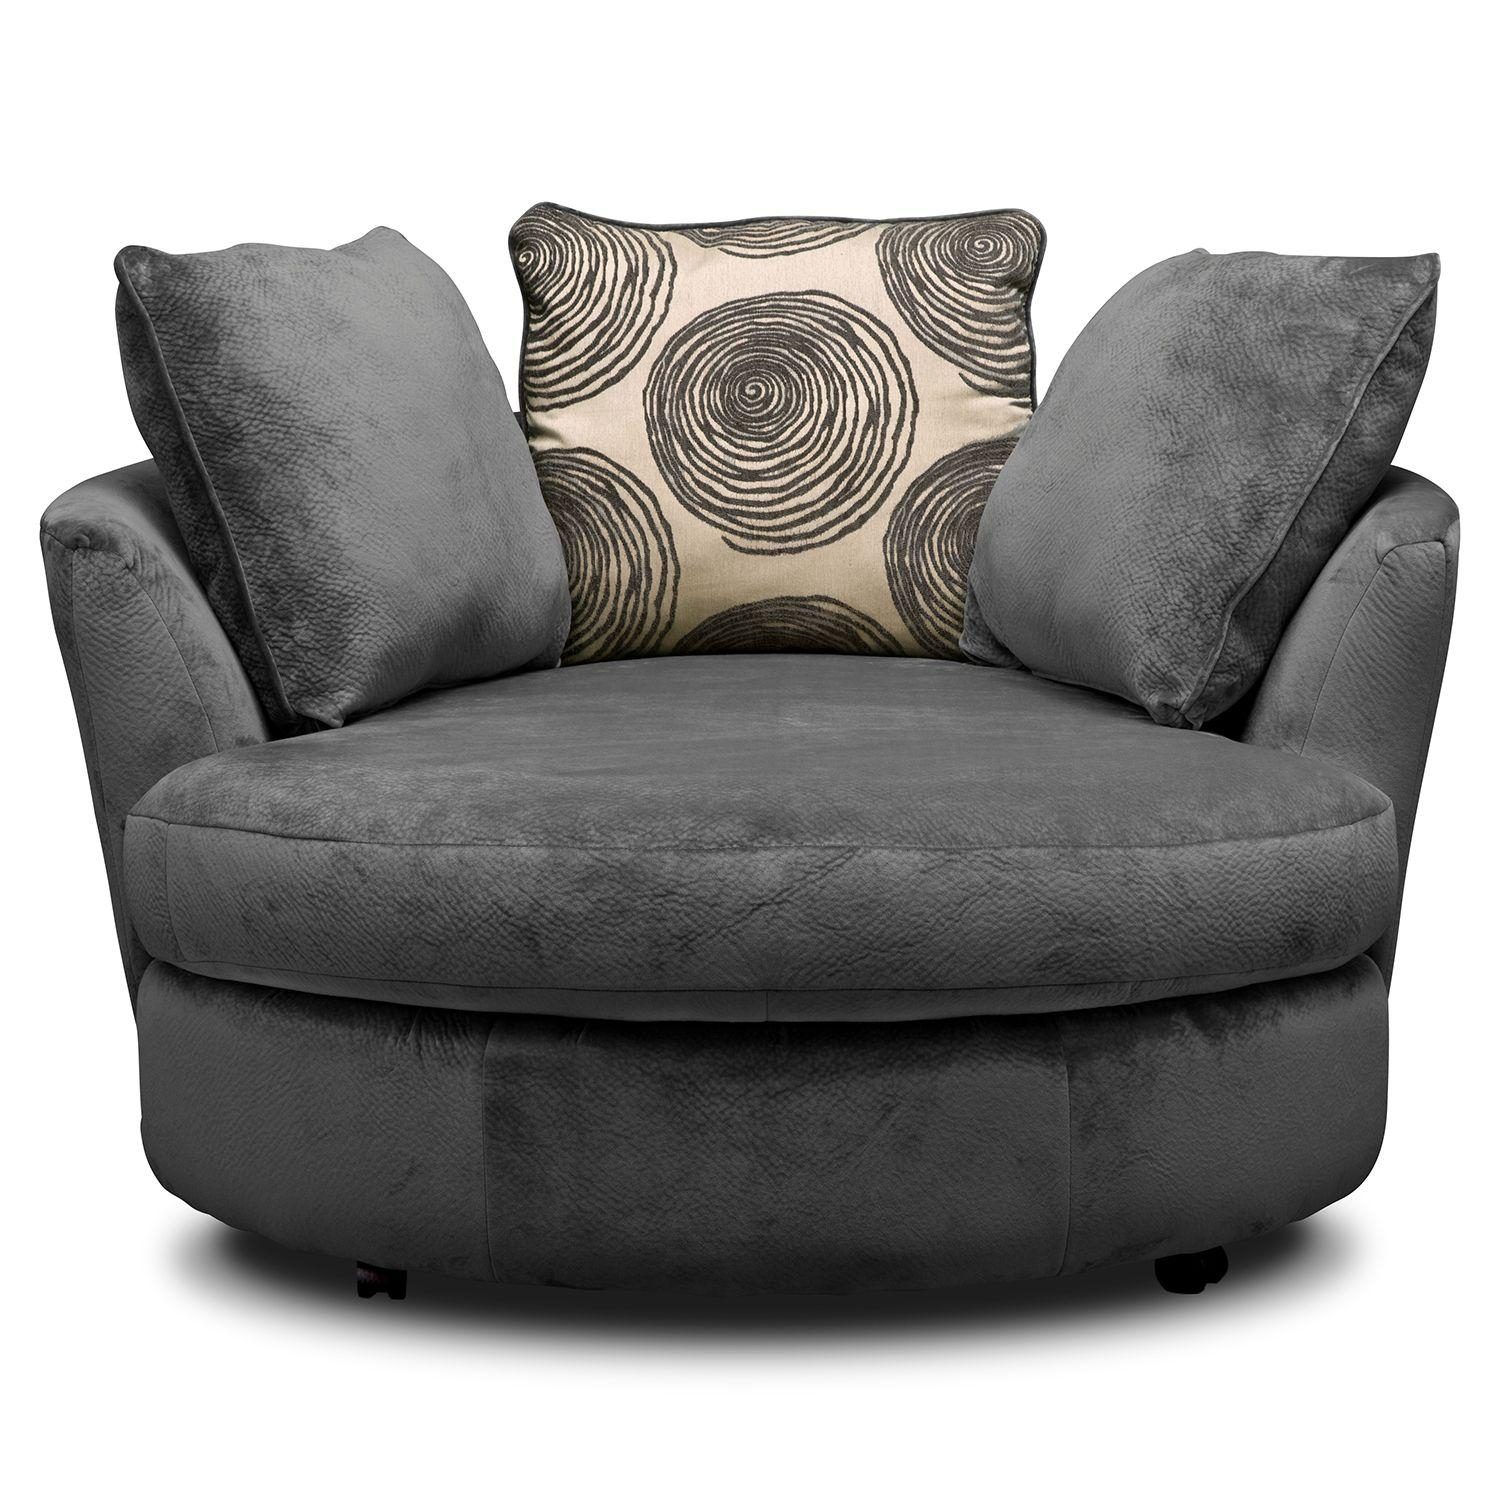 Sofas Center : Shocking Round Sofa Chair Picture Concept Modern In Within Large Sofa Chairs (View 3 of 20)